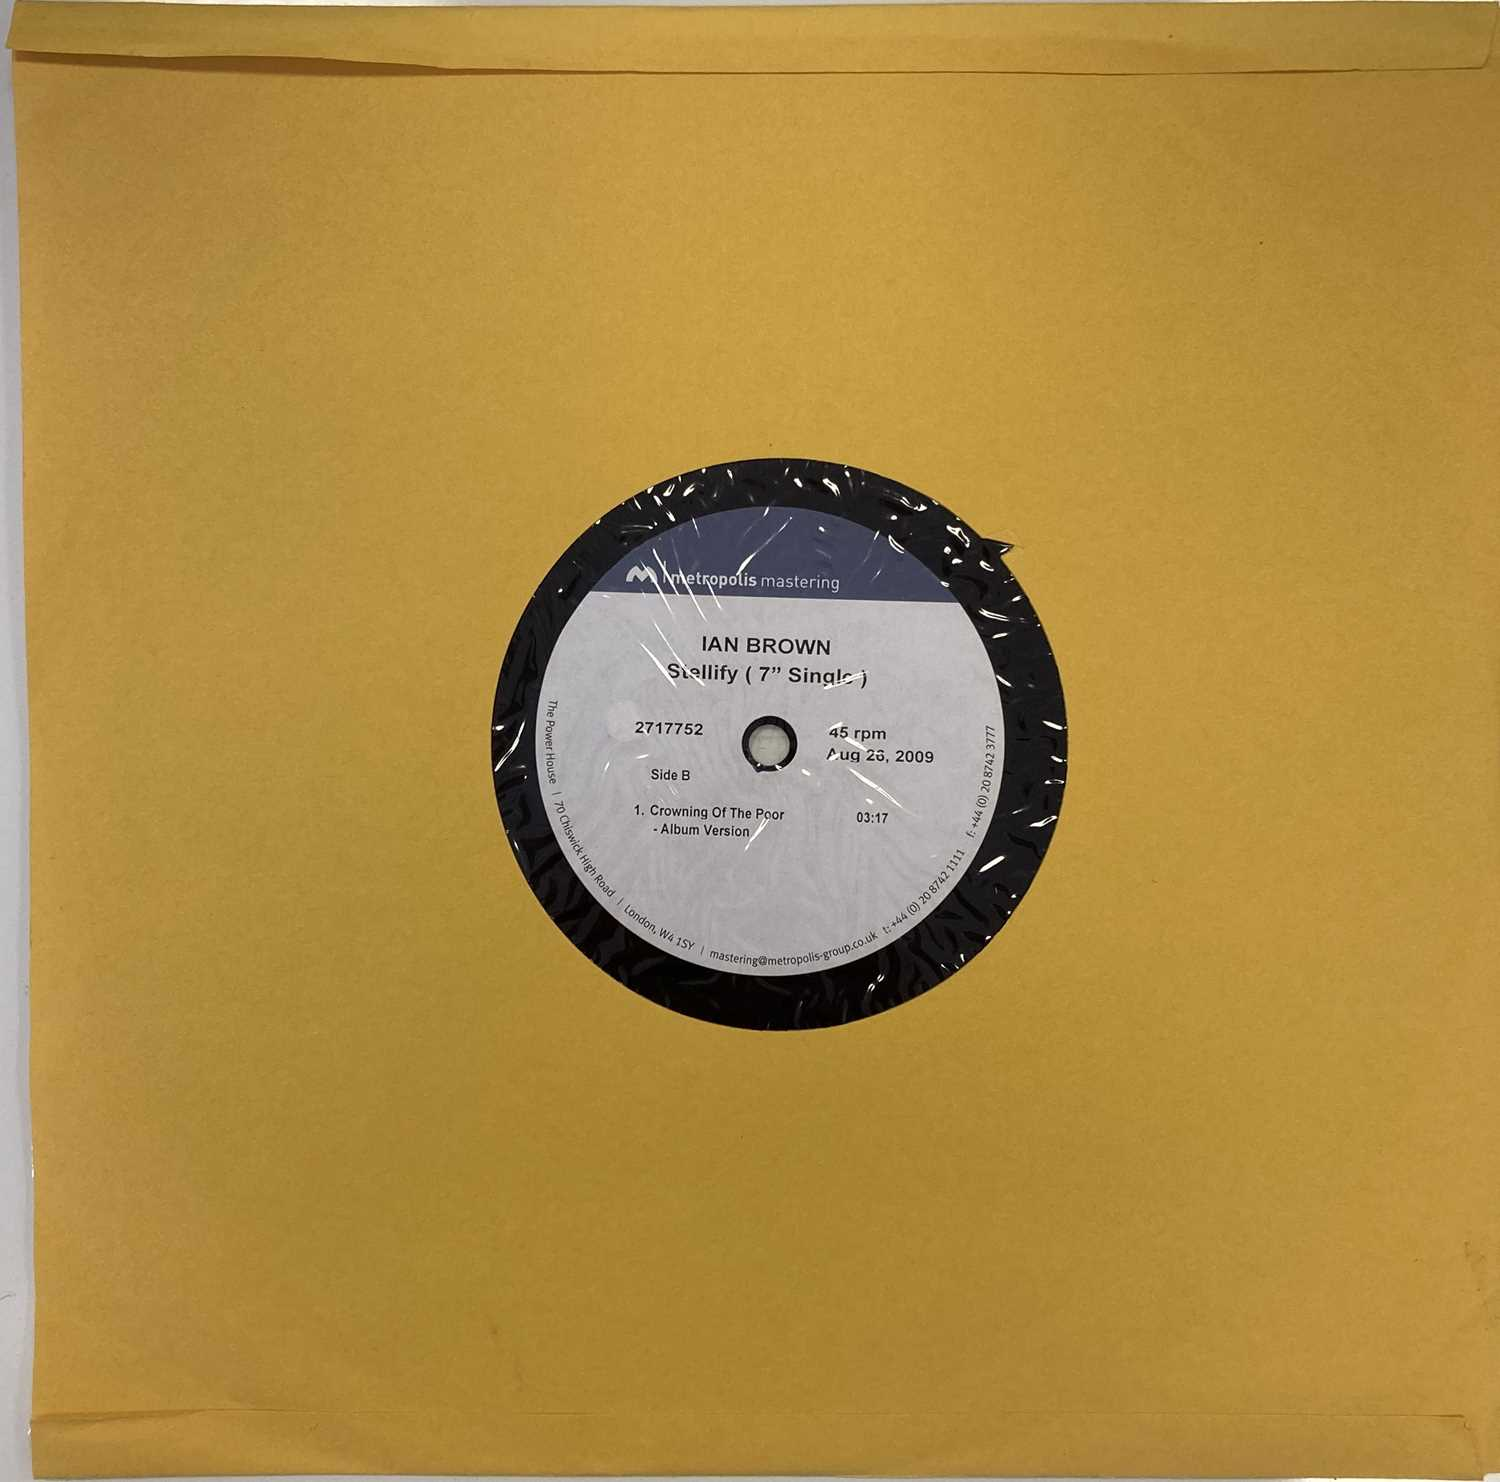 "IAN BROWN - STELLIFY 7"" ACETATE RECORDING (2717752) - Image 2 of 4"